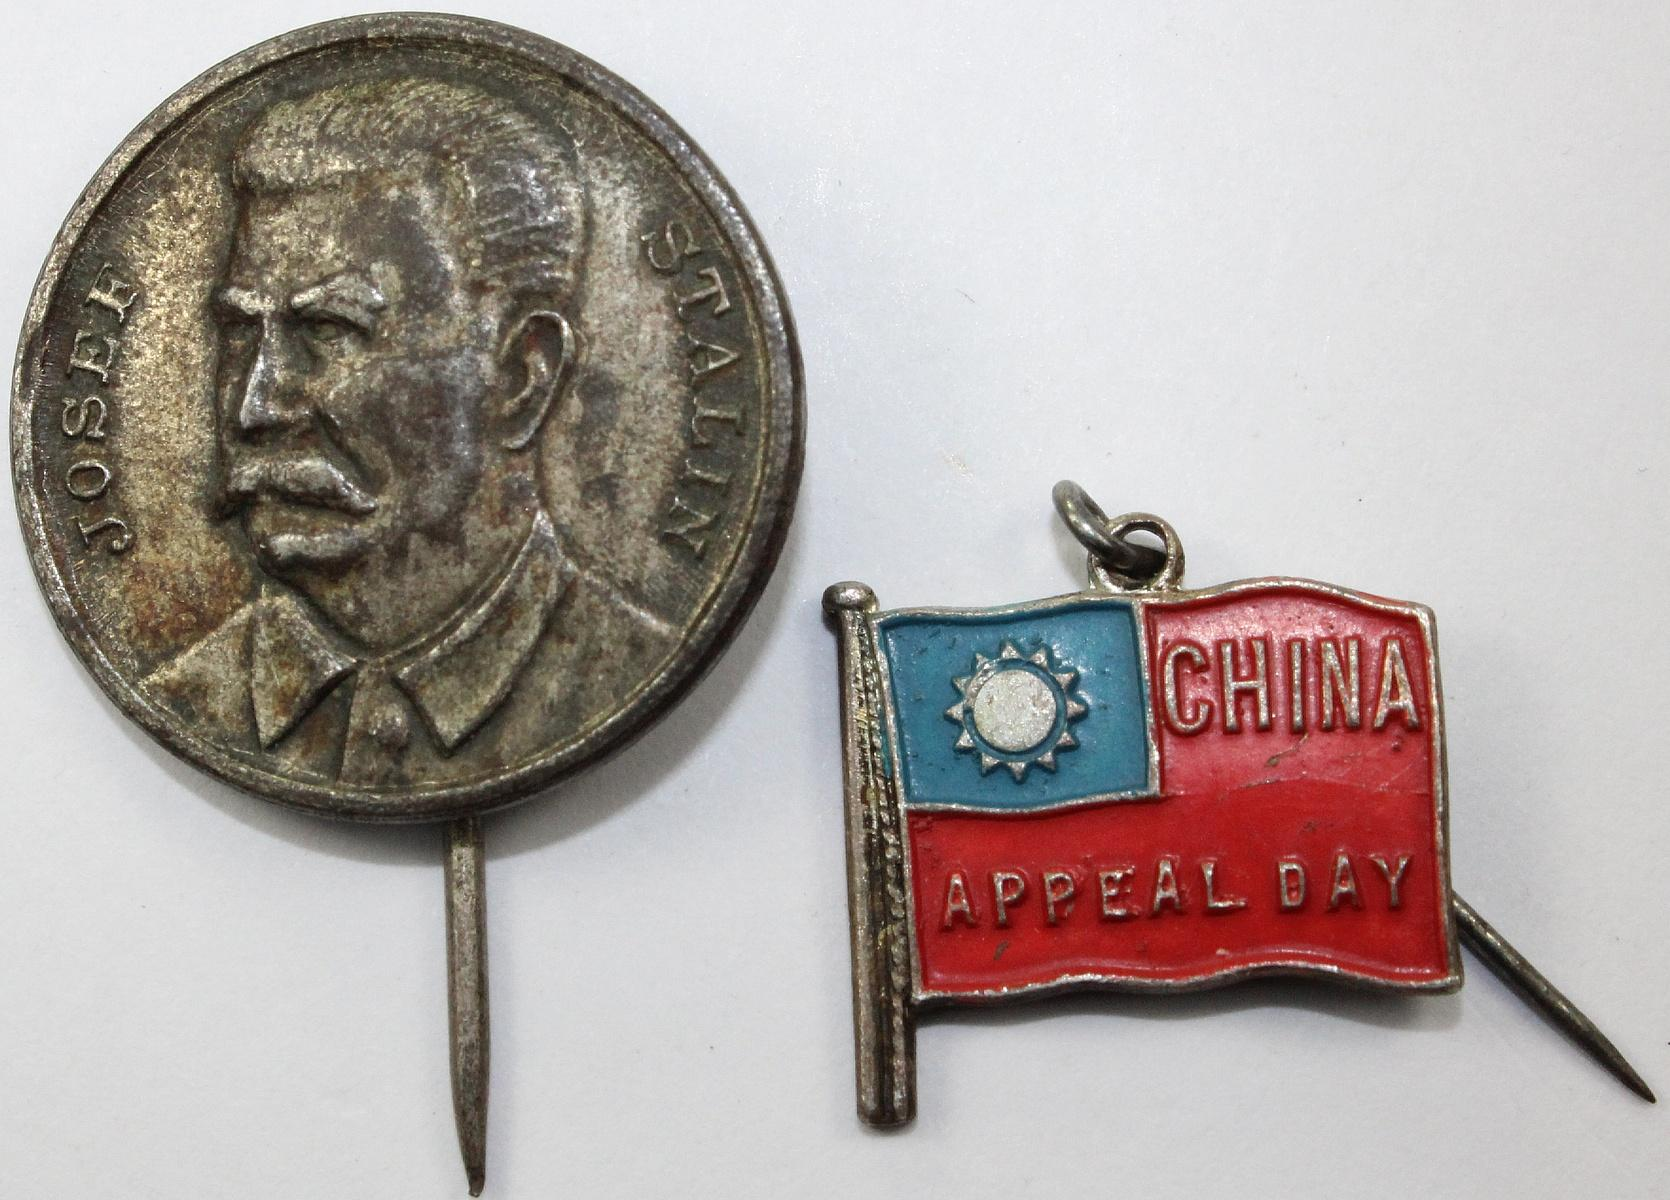 Australia. 2/- Appeal Pins from WWII for Russia & China (2 items)